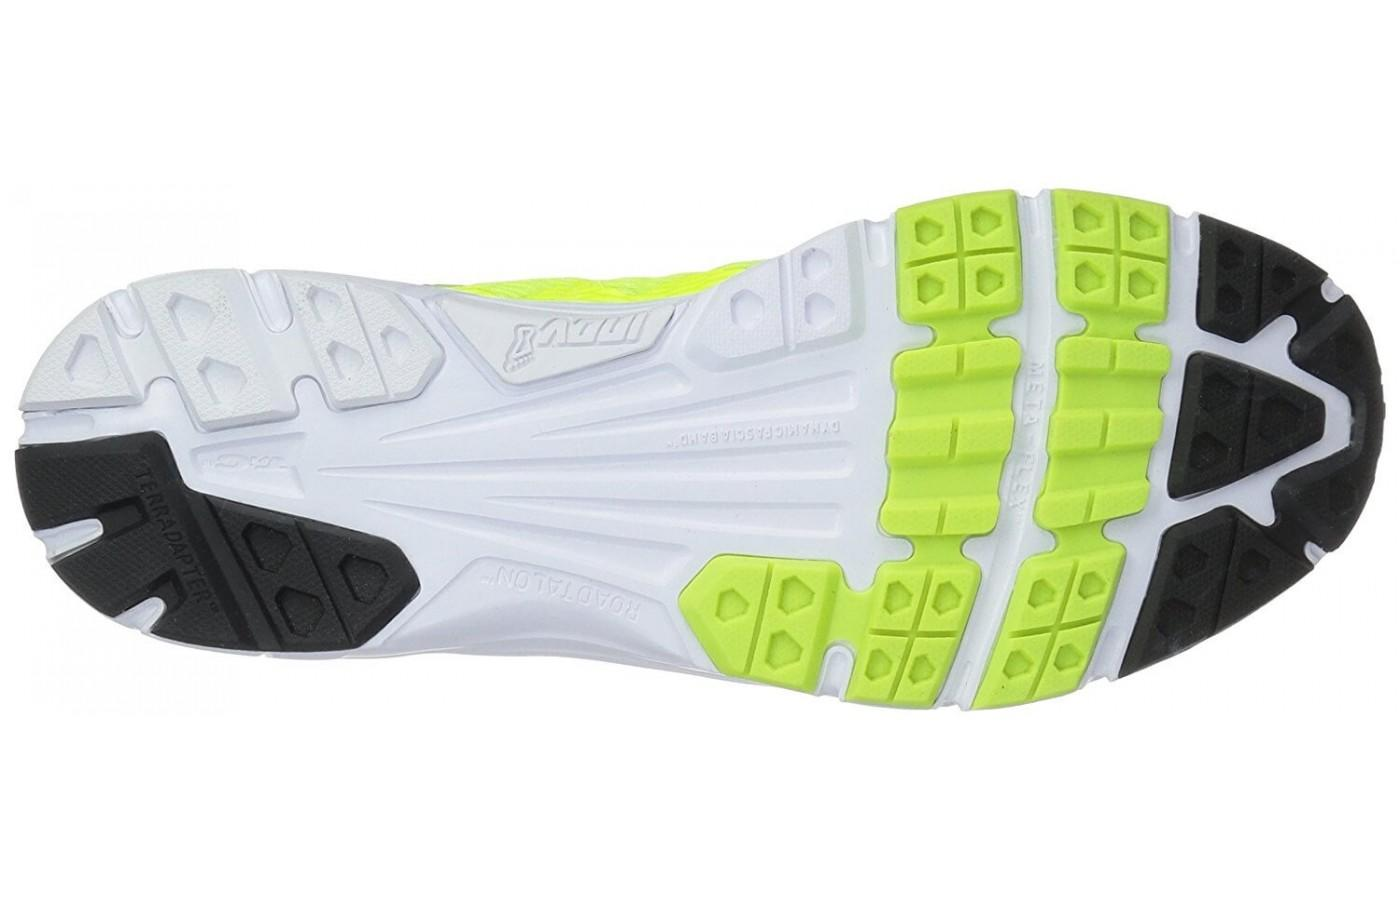 The TRI-C rubber outsole is a blend of 3 different rubbers for maximum grip and durability.